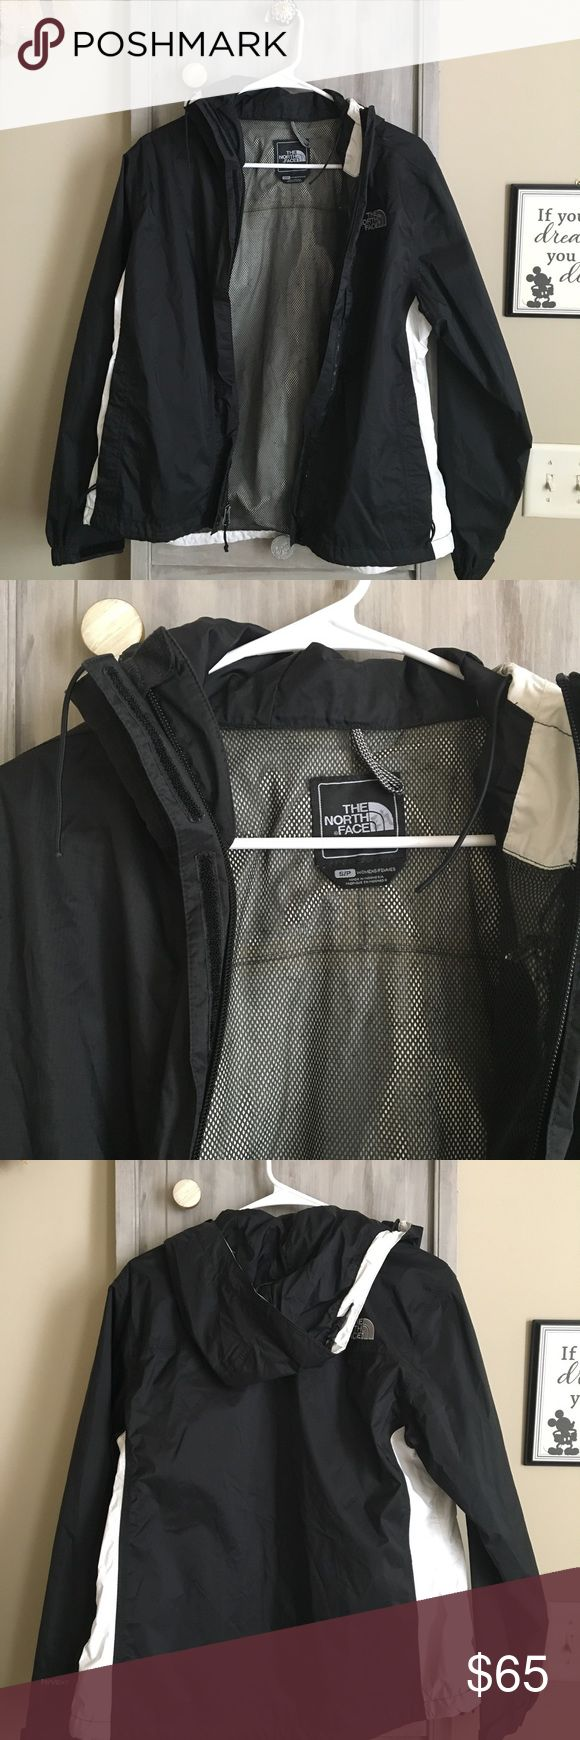 North Face Rain Jacket Jacket has been worn a few times, but barely shows it. The adjustable pieces for the hood of the jacket are missing, but hasn't been a problem for me personally! North Face Jackets & Coats